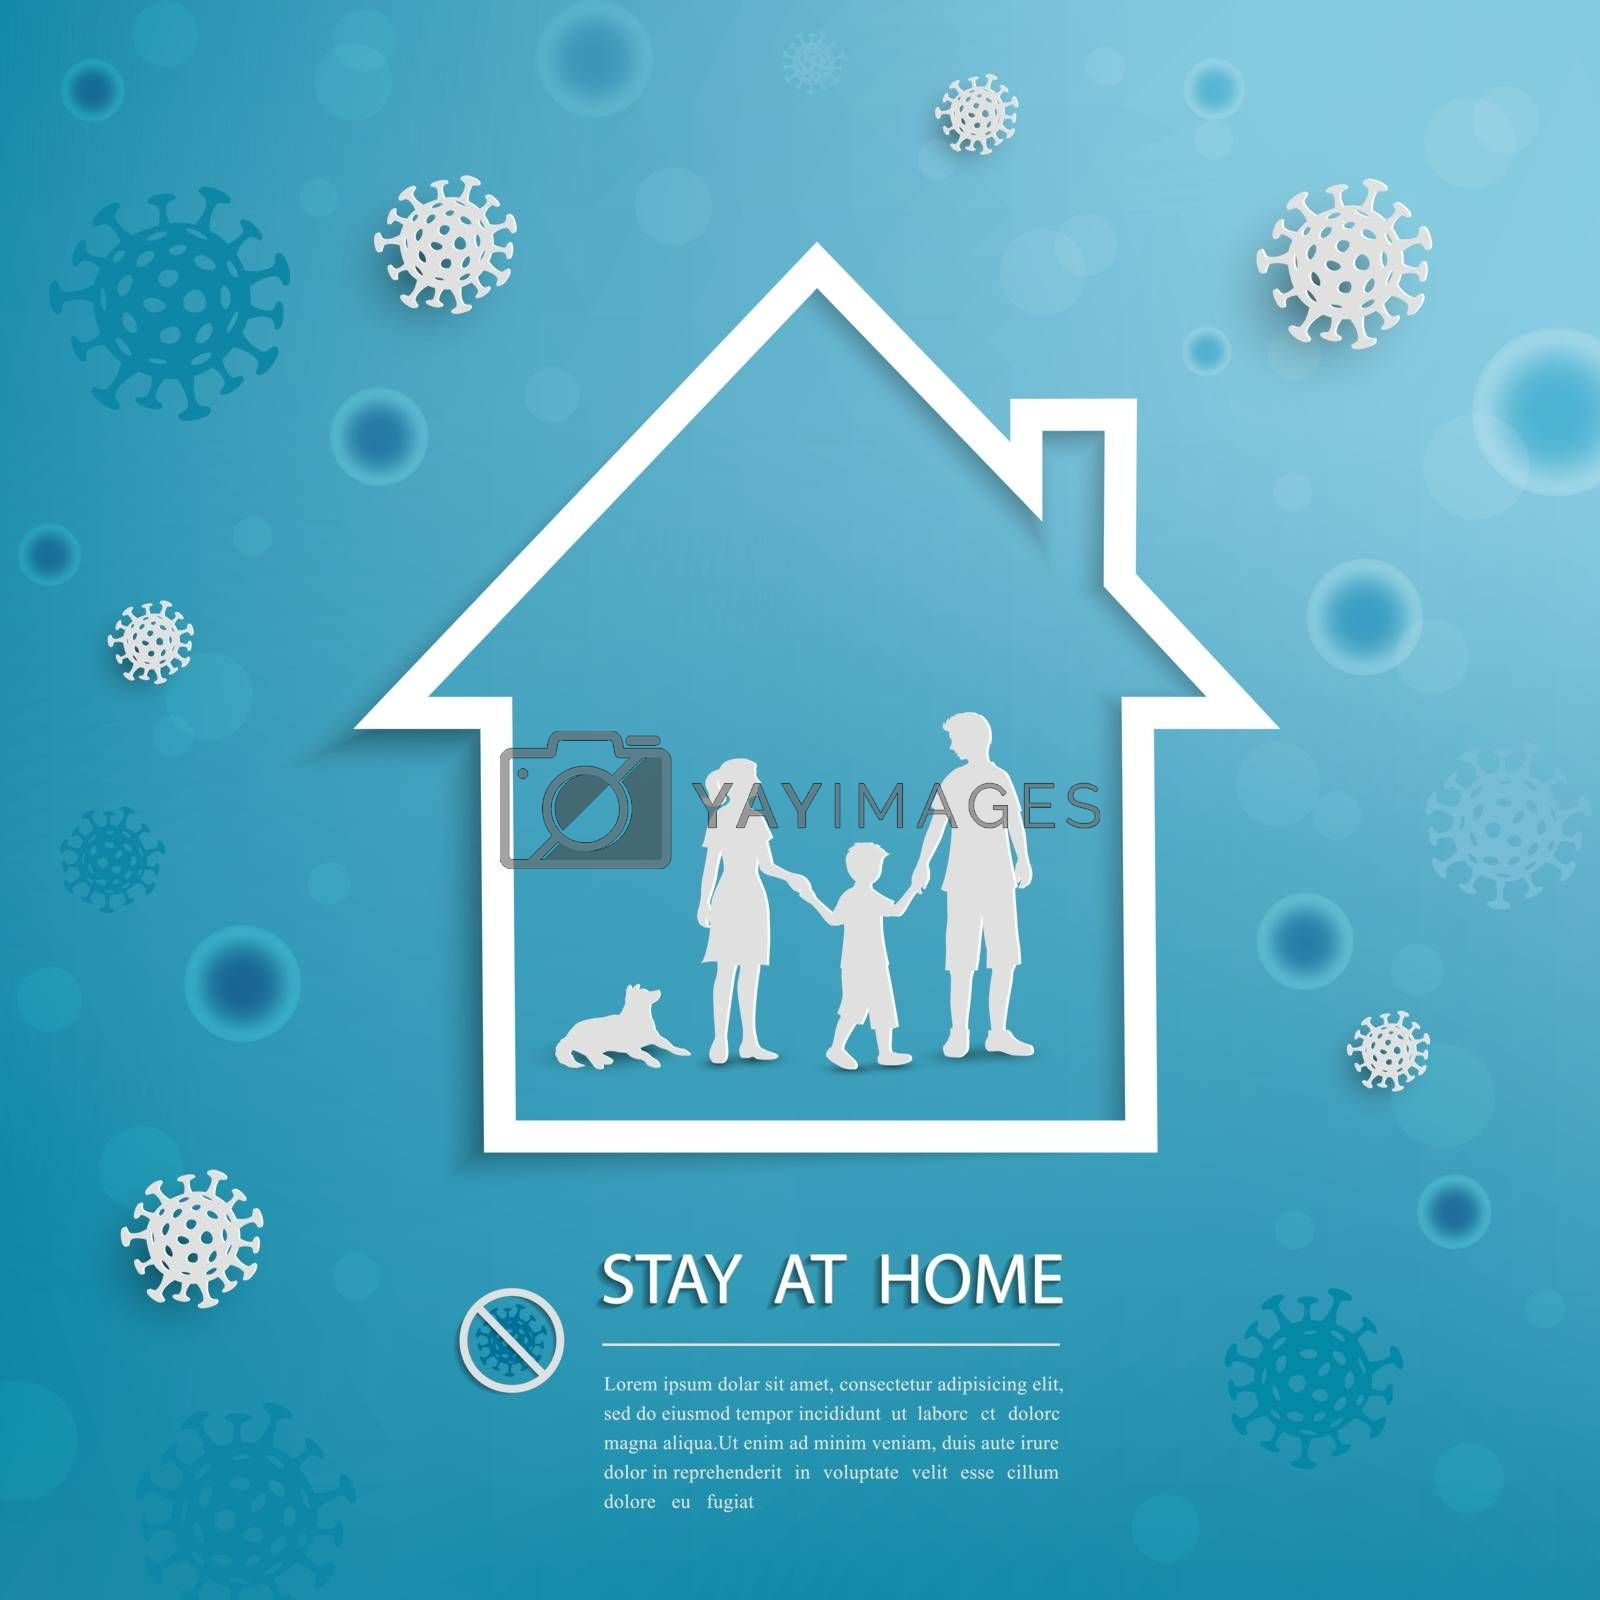 Family stay at home during outbreak of covid-19 coronavirus,for advertising,banner,template or background,vector illustration